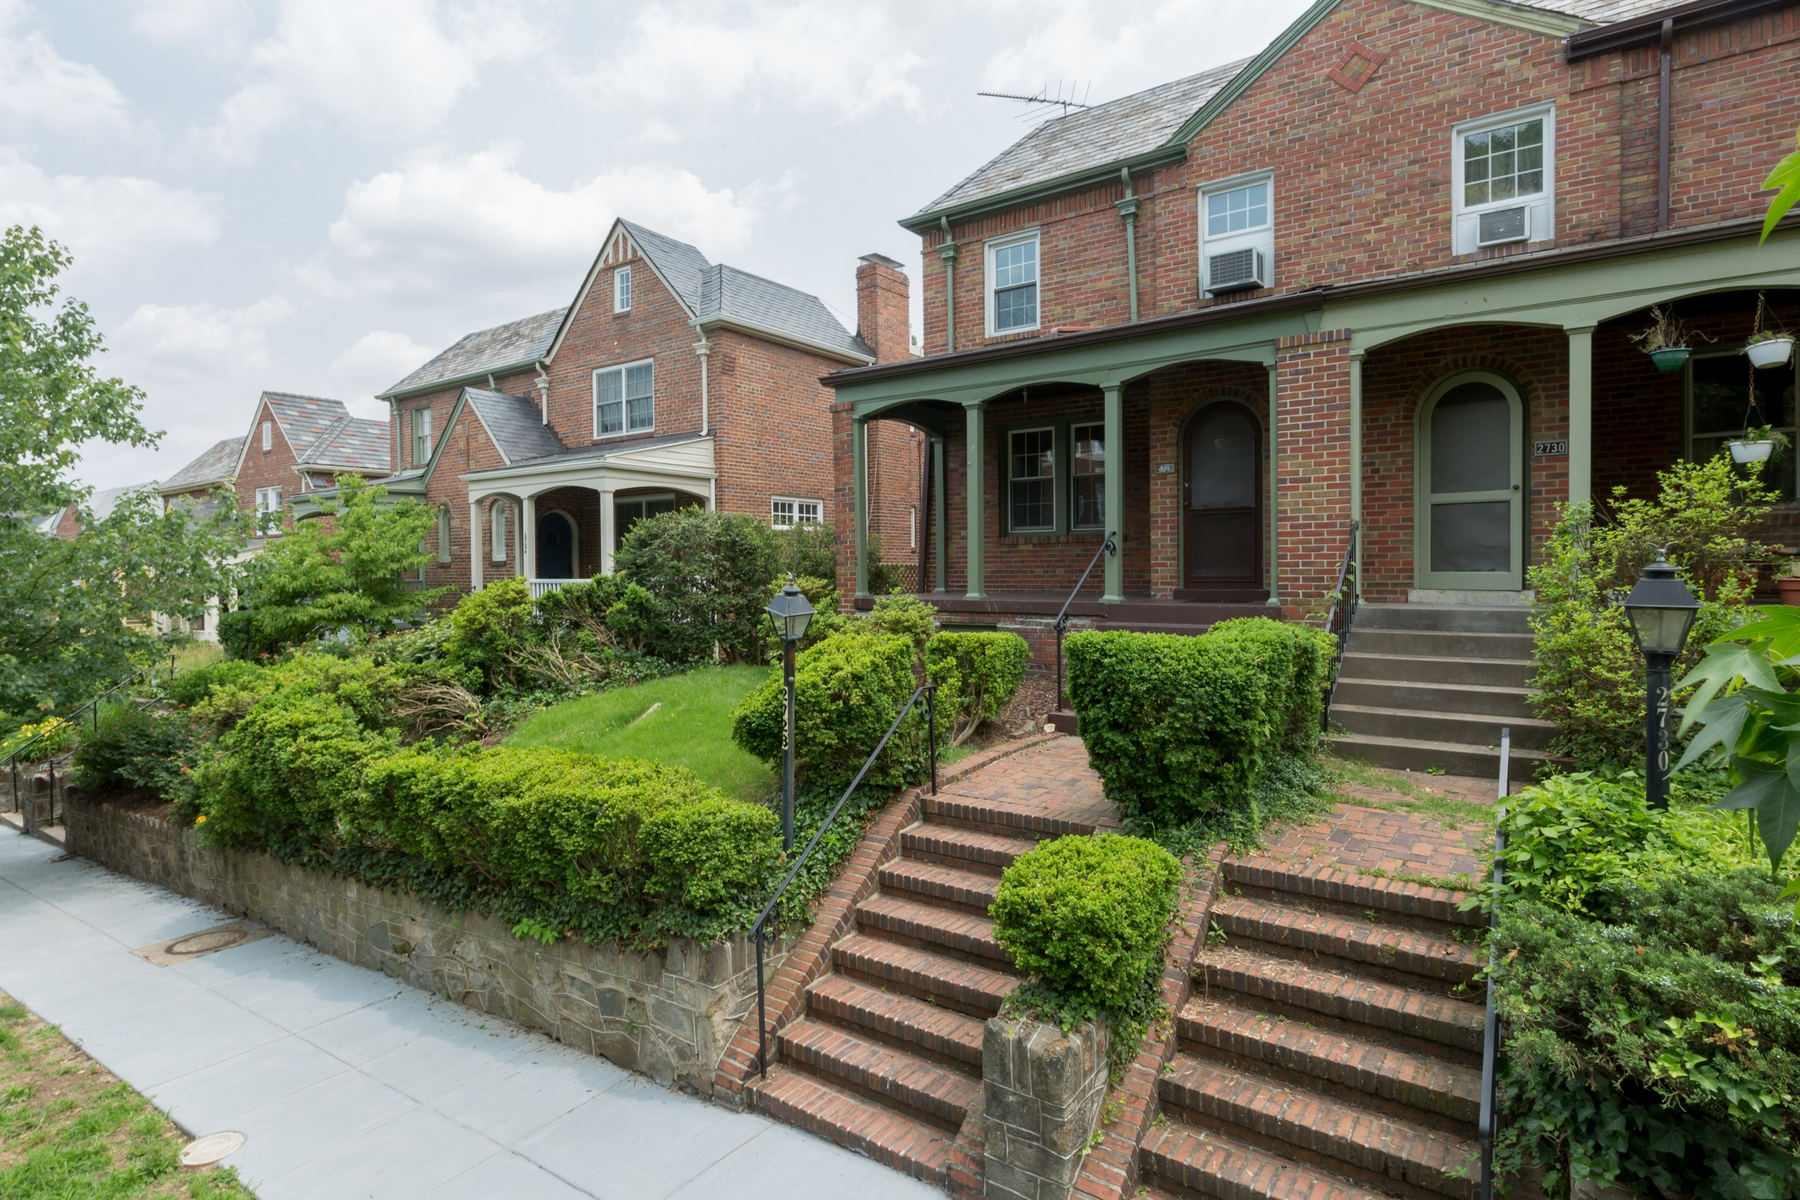 Townhouse for Sale at Garfield 2728 Cortland Place Nw Washington, District Of Columbia 20008 United States